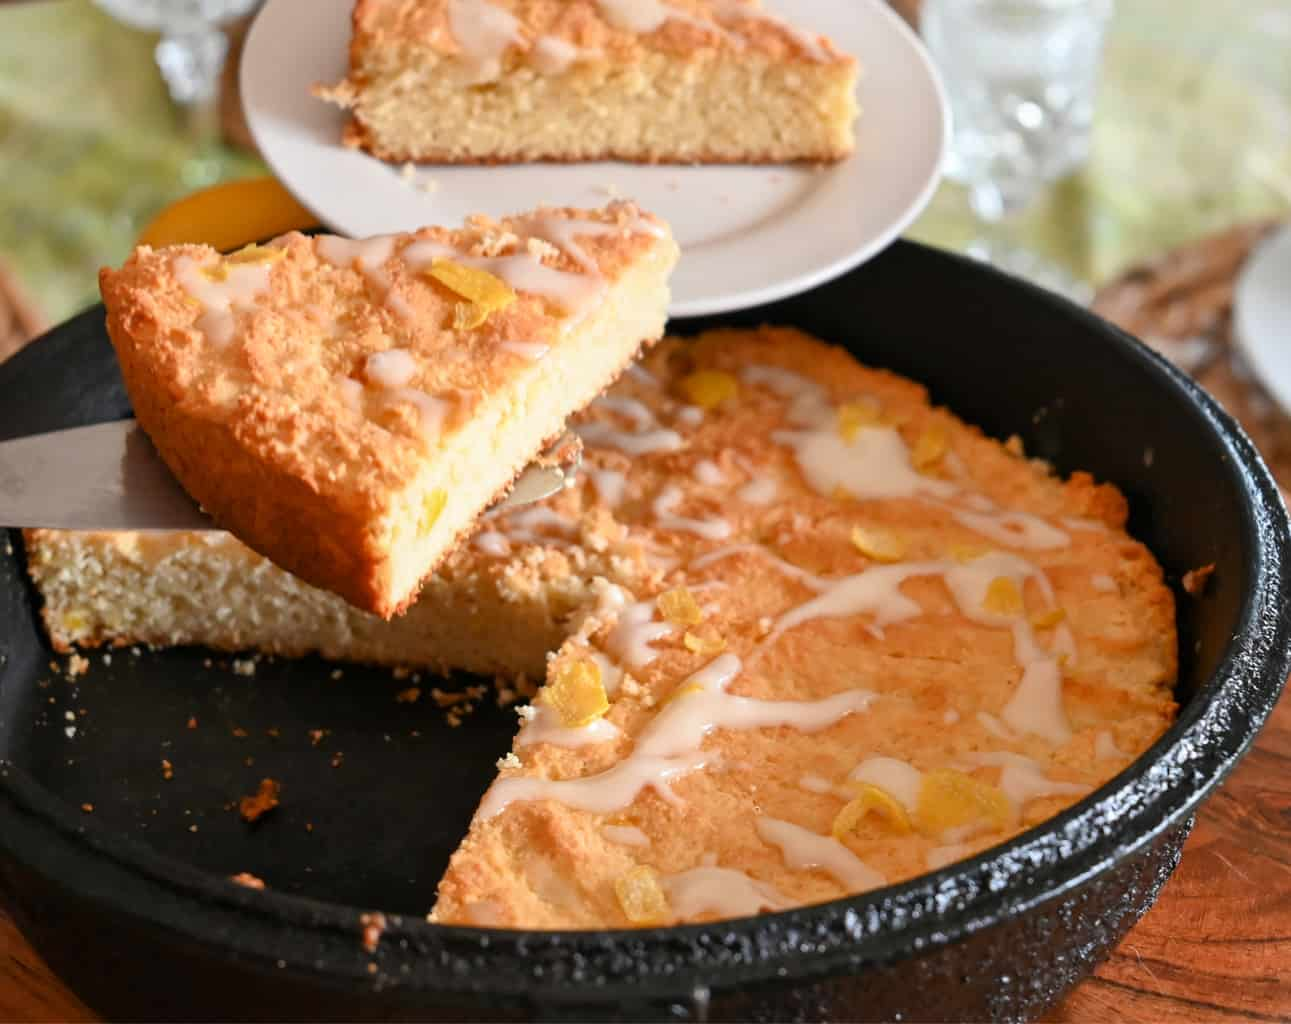 keto lemon scones baked in a cast-iron skillet being served